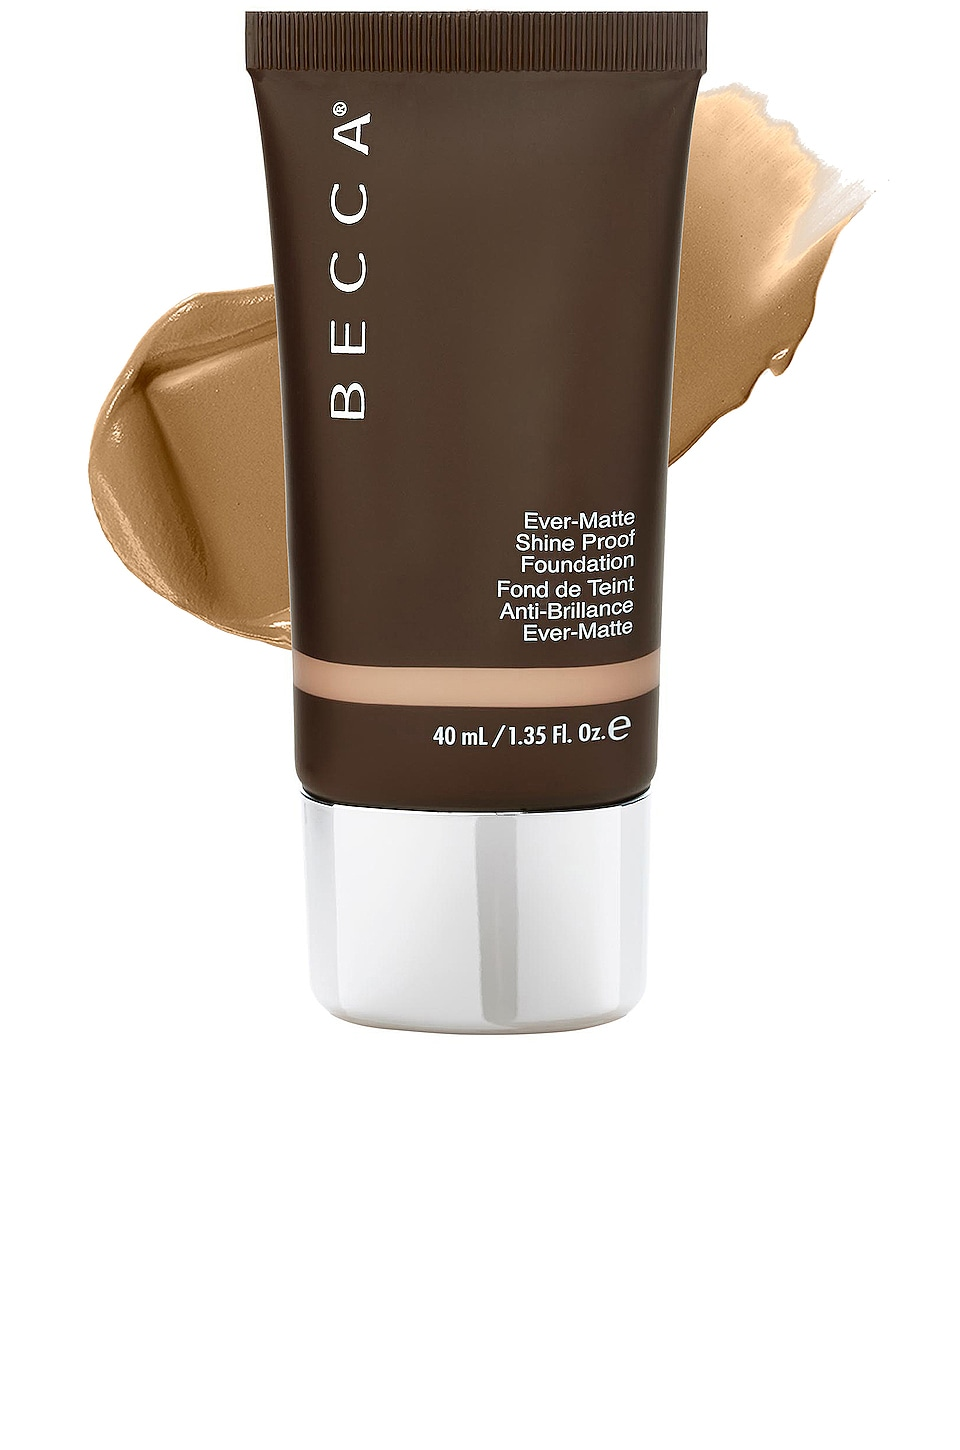 BECCA Ever-Matte Shine Proof Foundation in Fawn